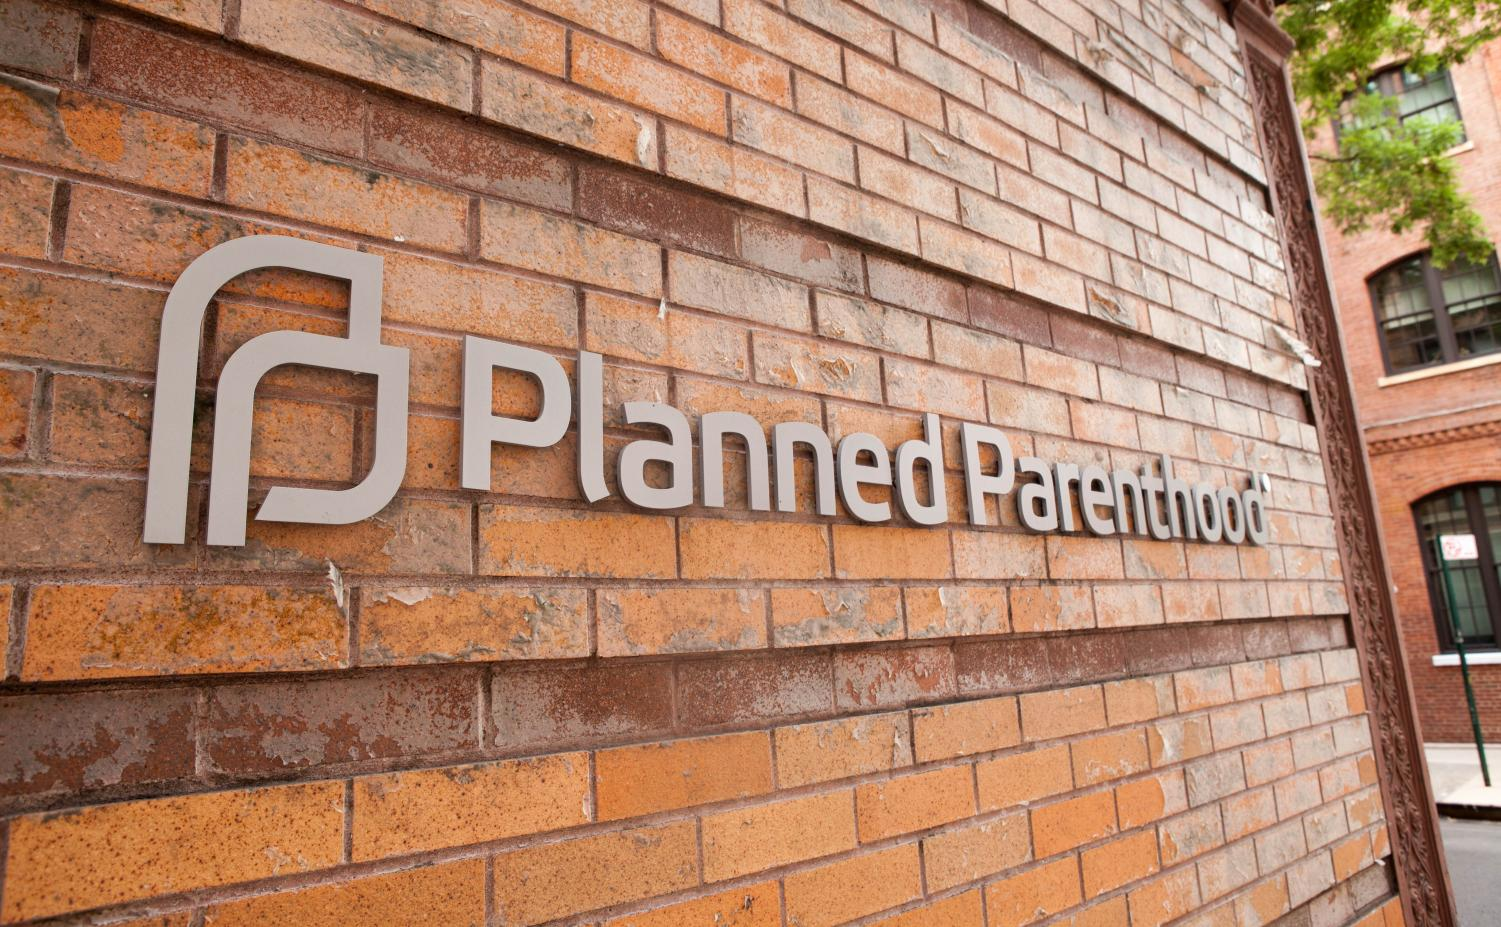 The+Threat+of+Defunding+Planned+Parenthood